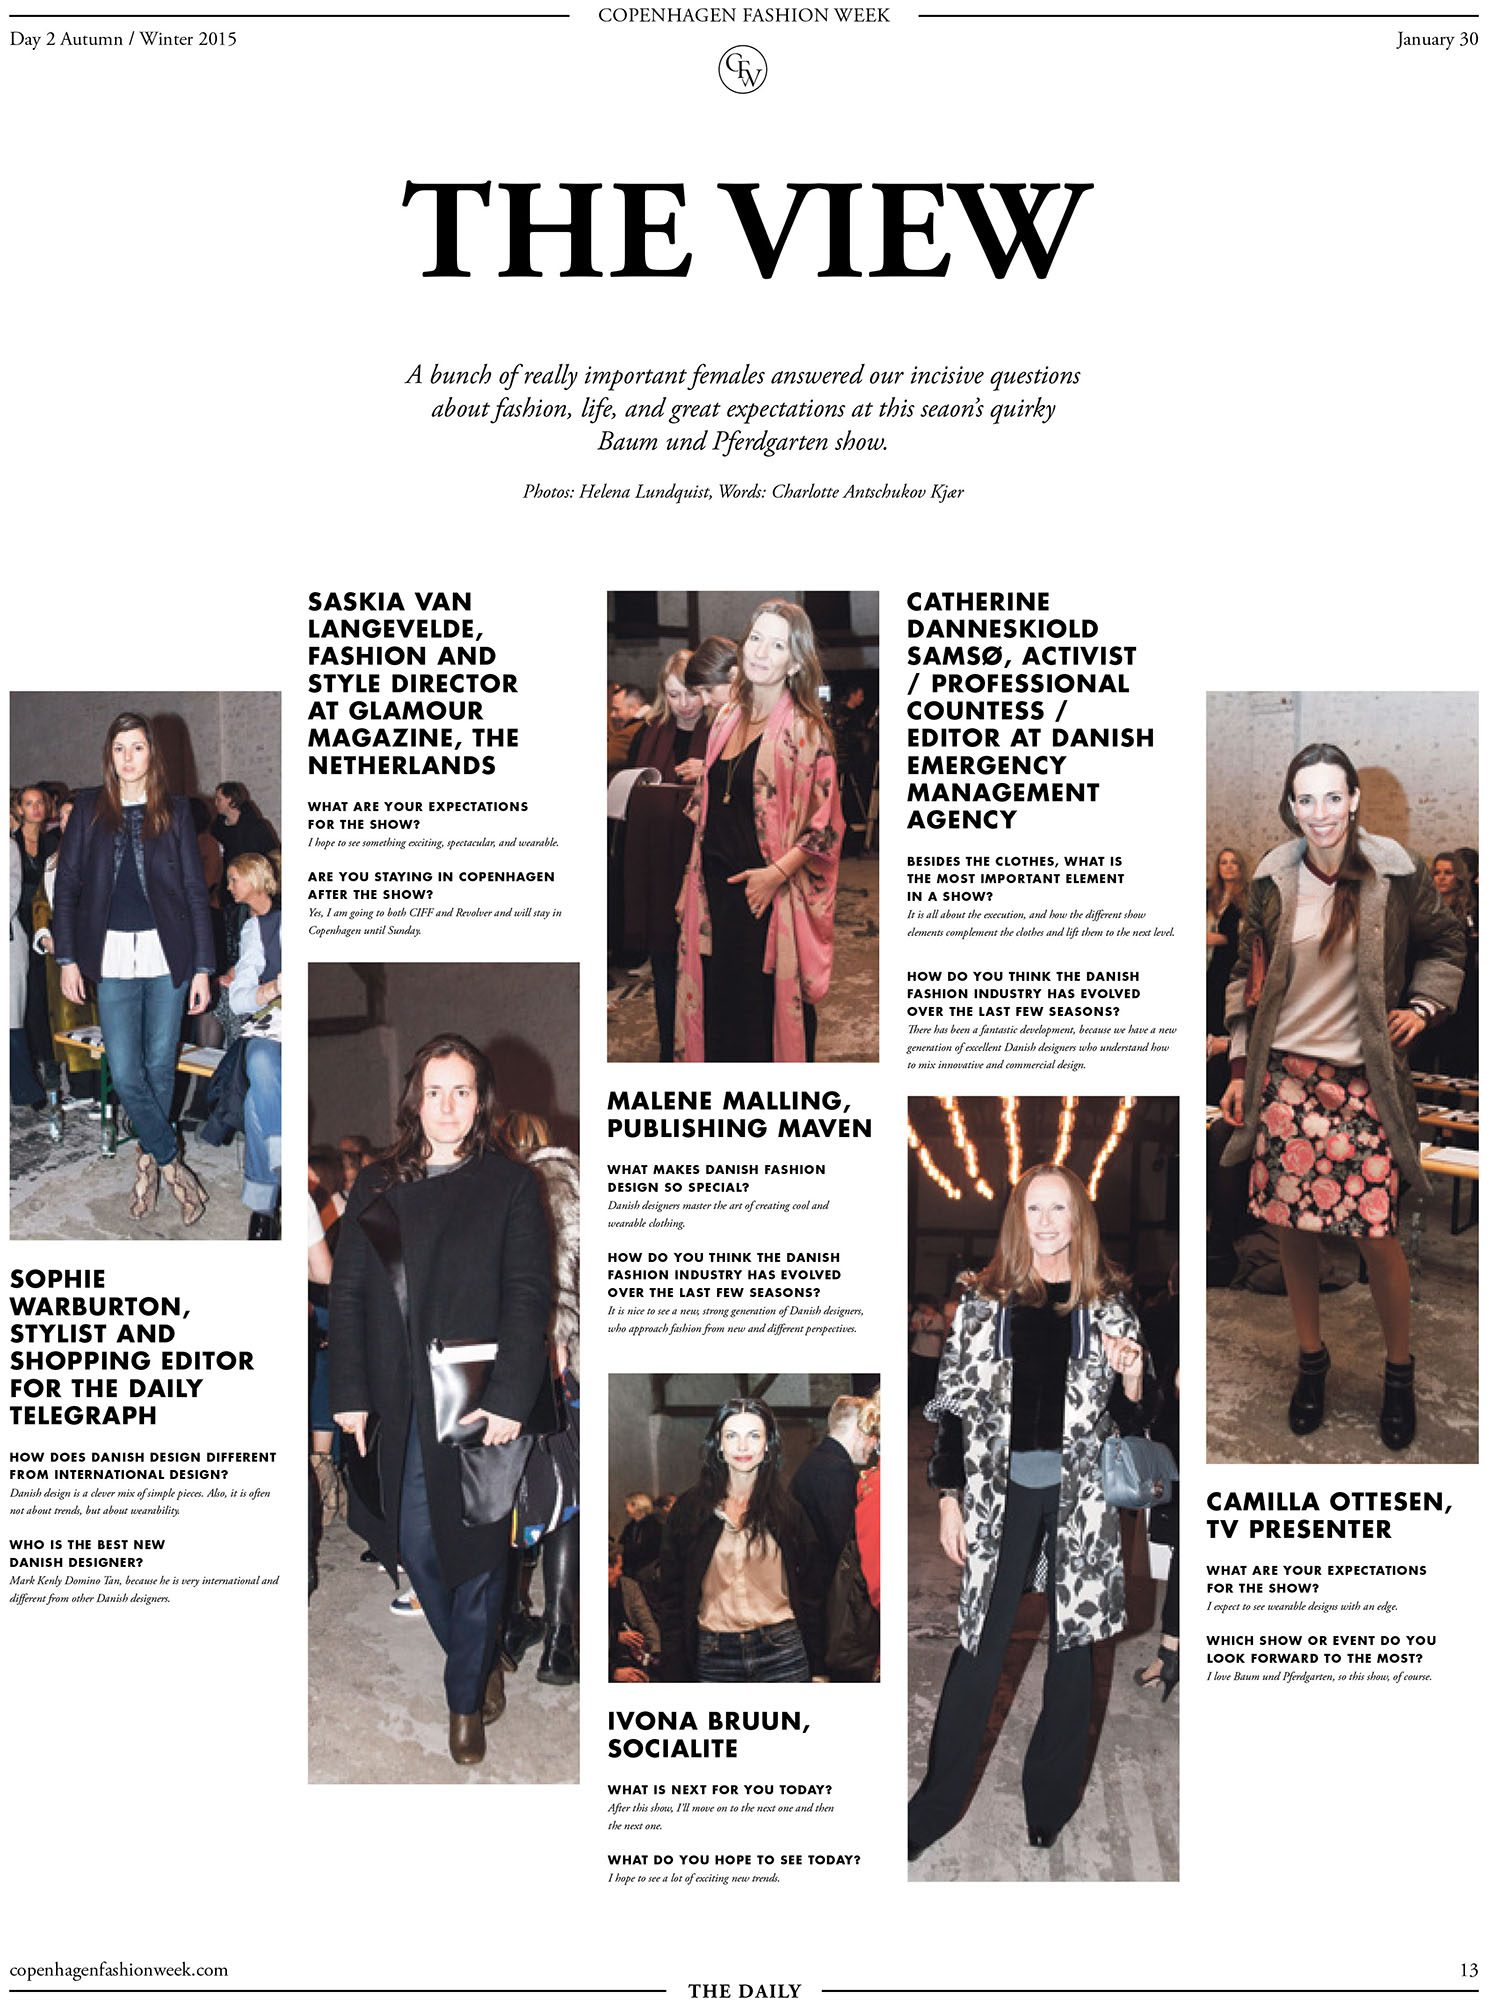 The Daily - Cph Fashion Week AW 15